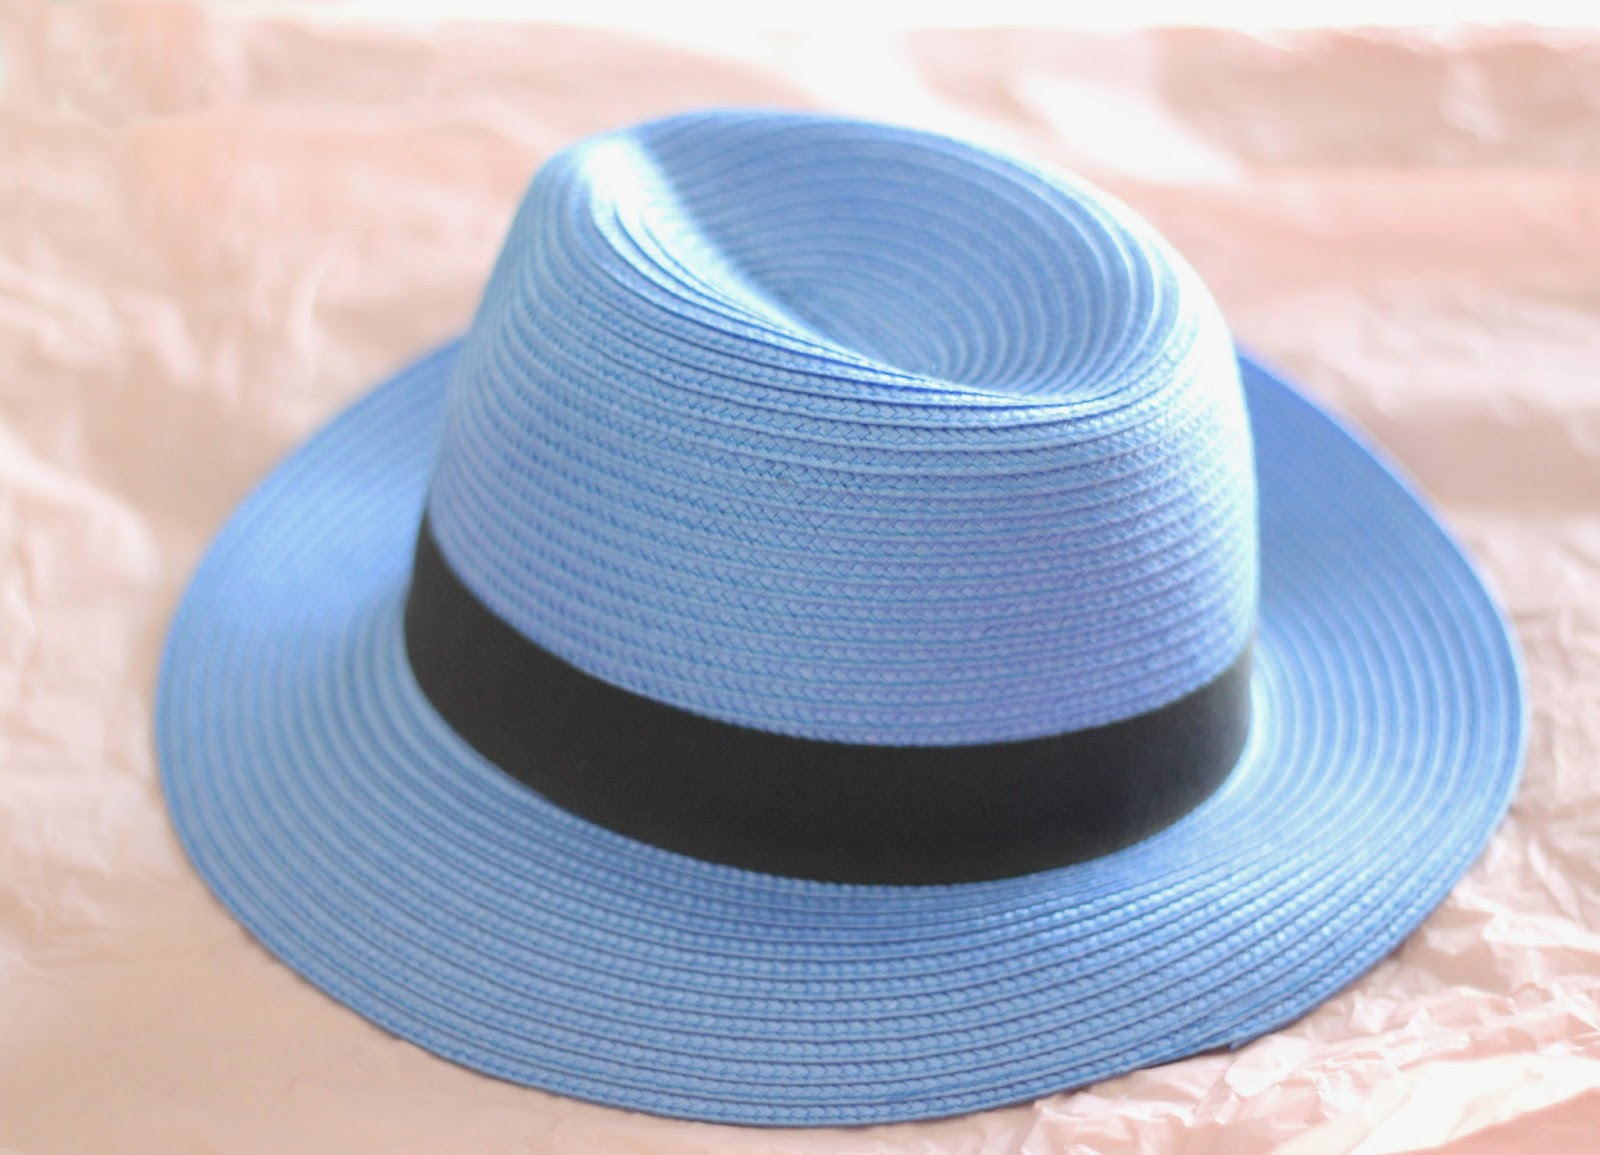 photo-sombrero-panama-azul